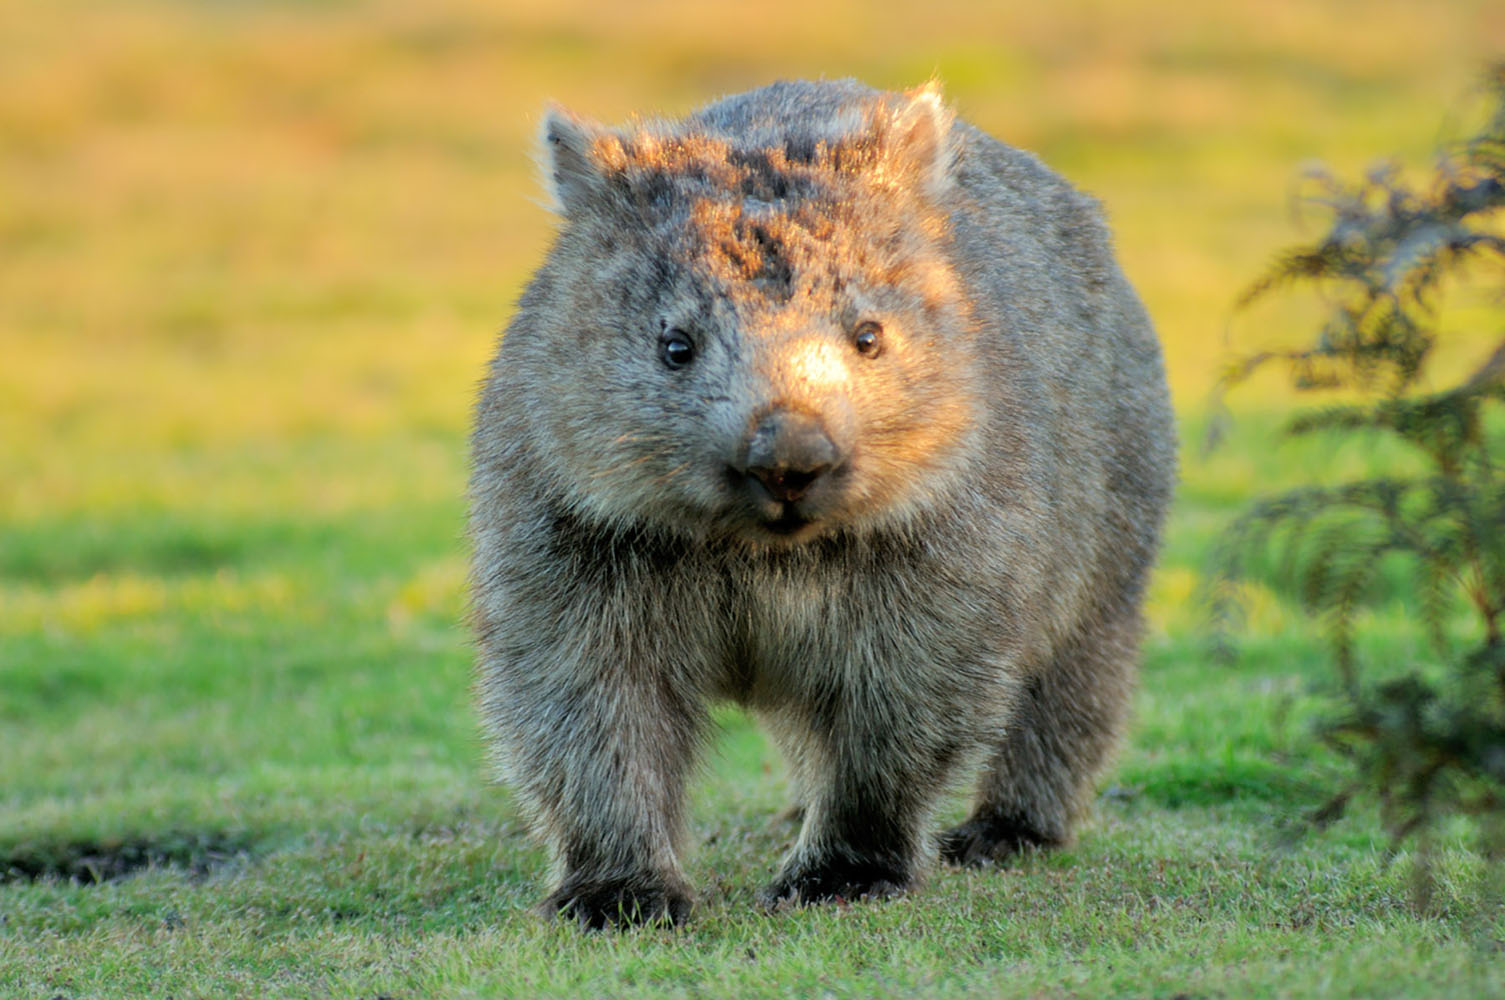 A Wombat forages for food at sunset